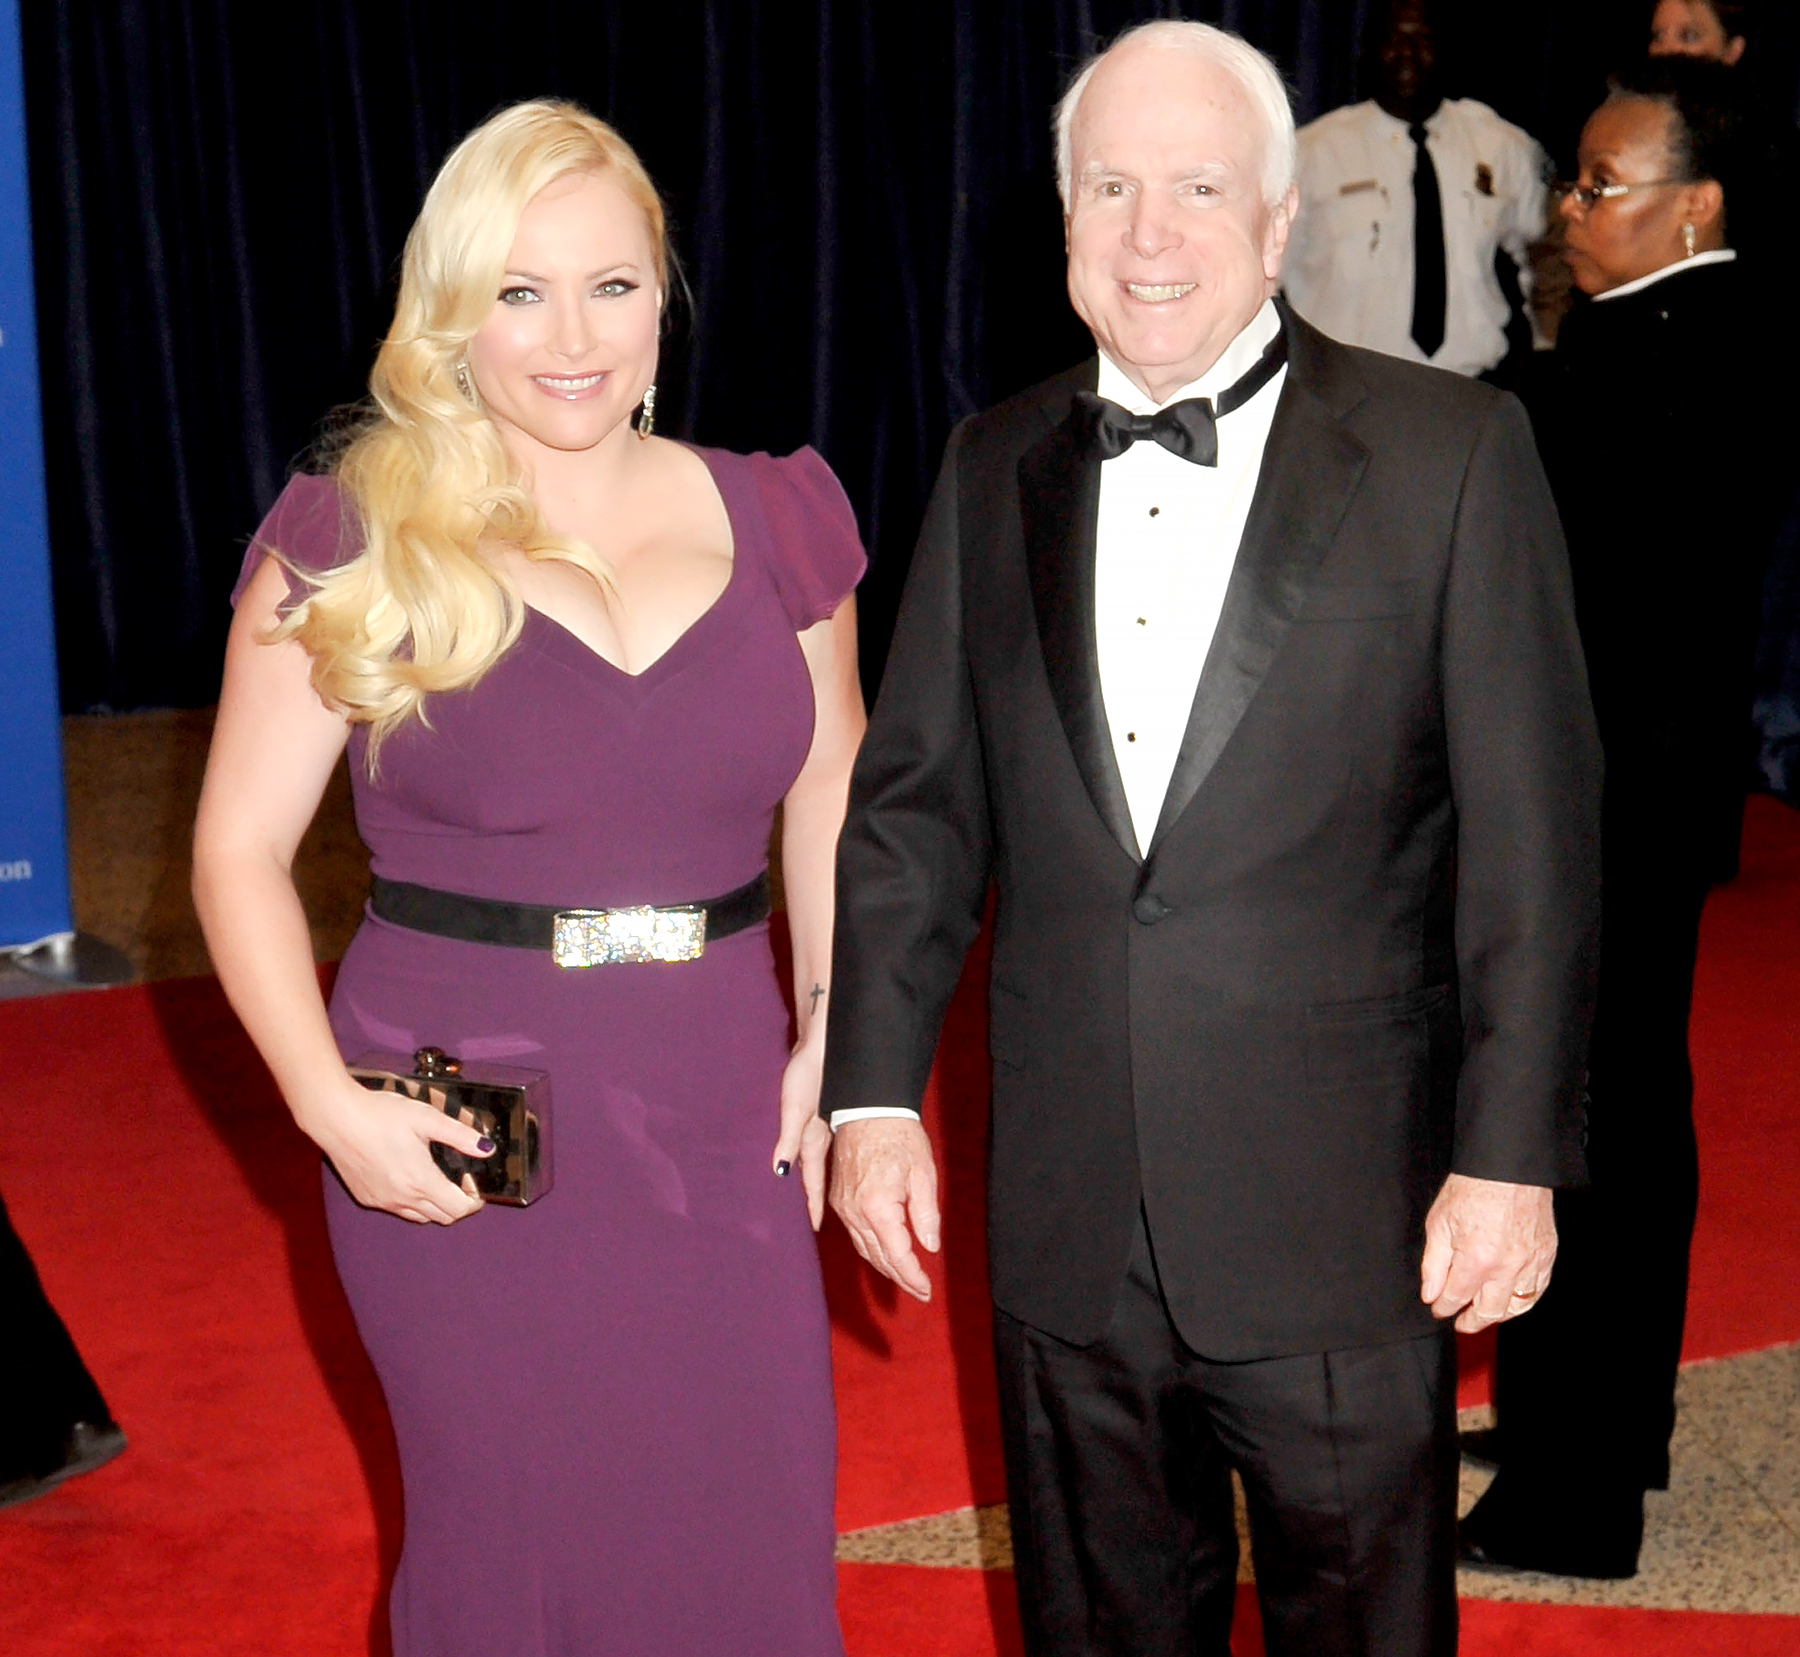 John Mccain Latest News Photos And Videos: John McCain Hikes With Daughter Meghan McCain After Brain